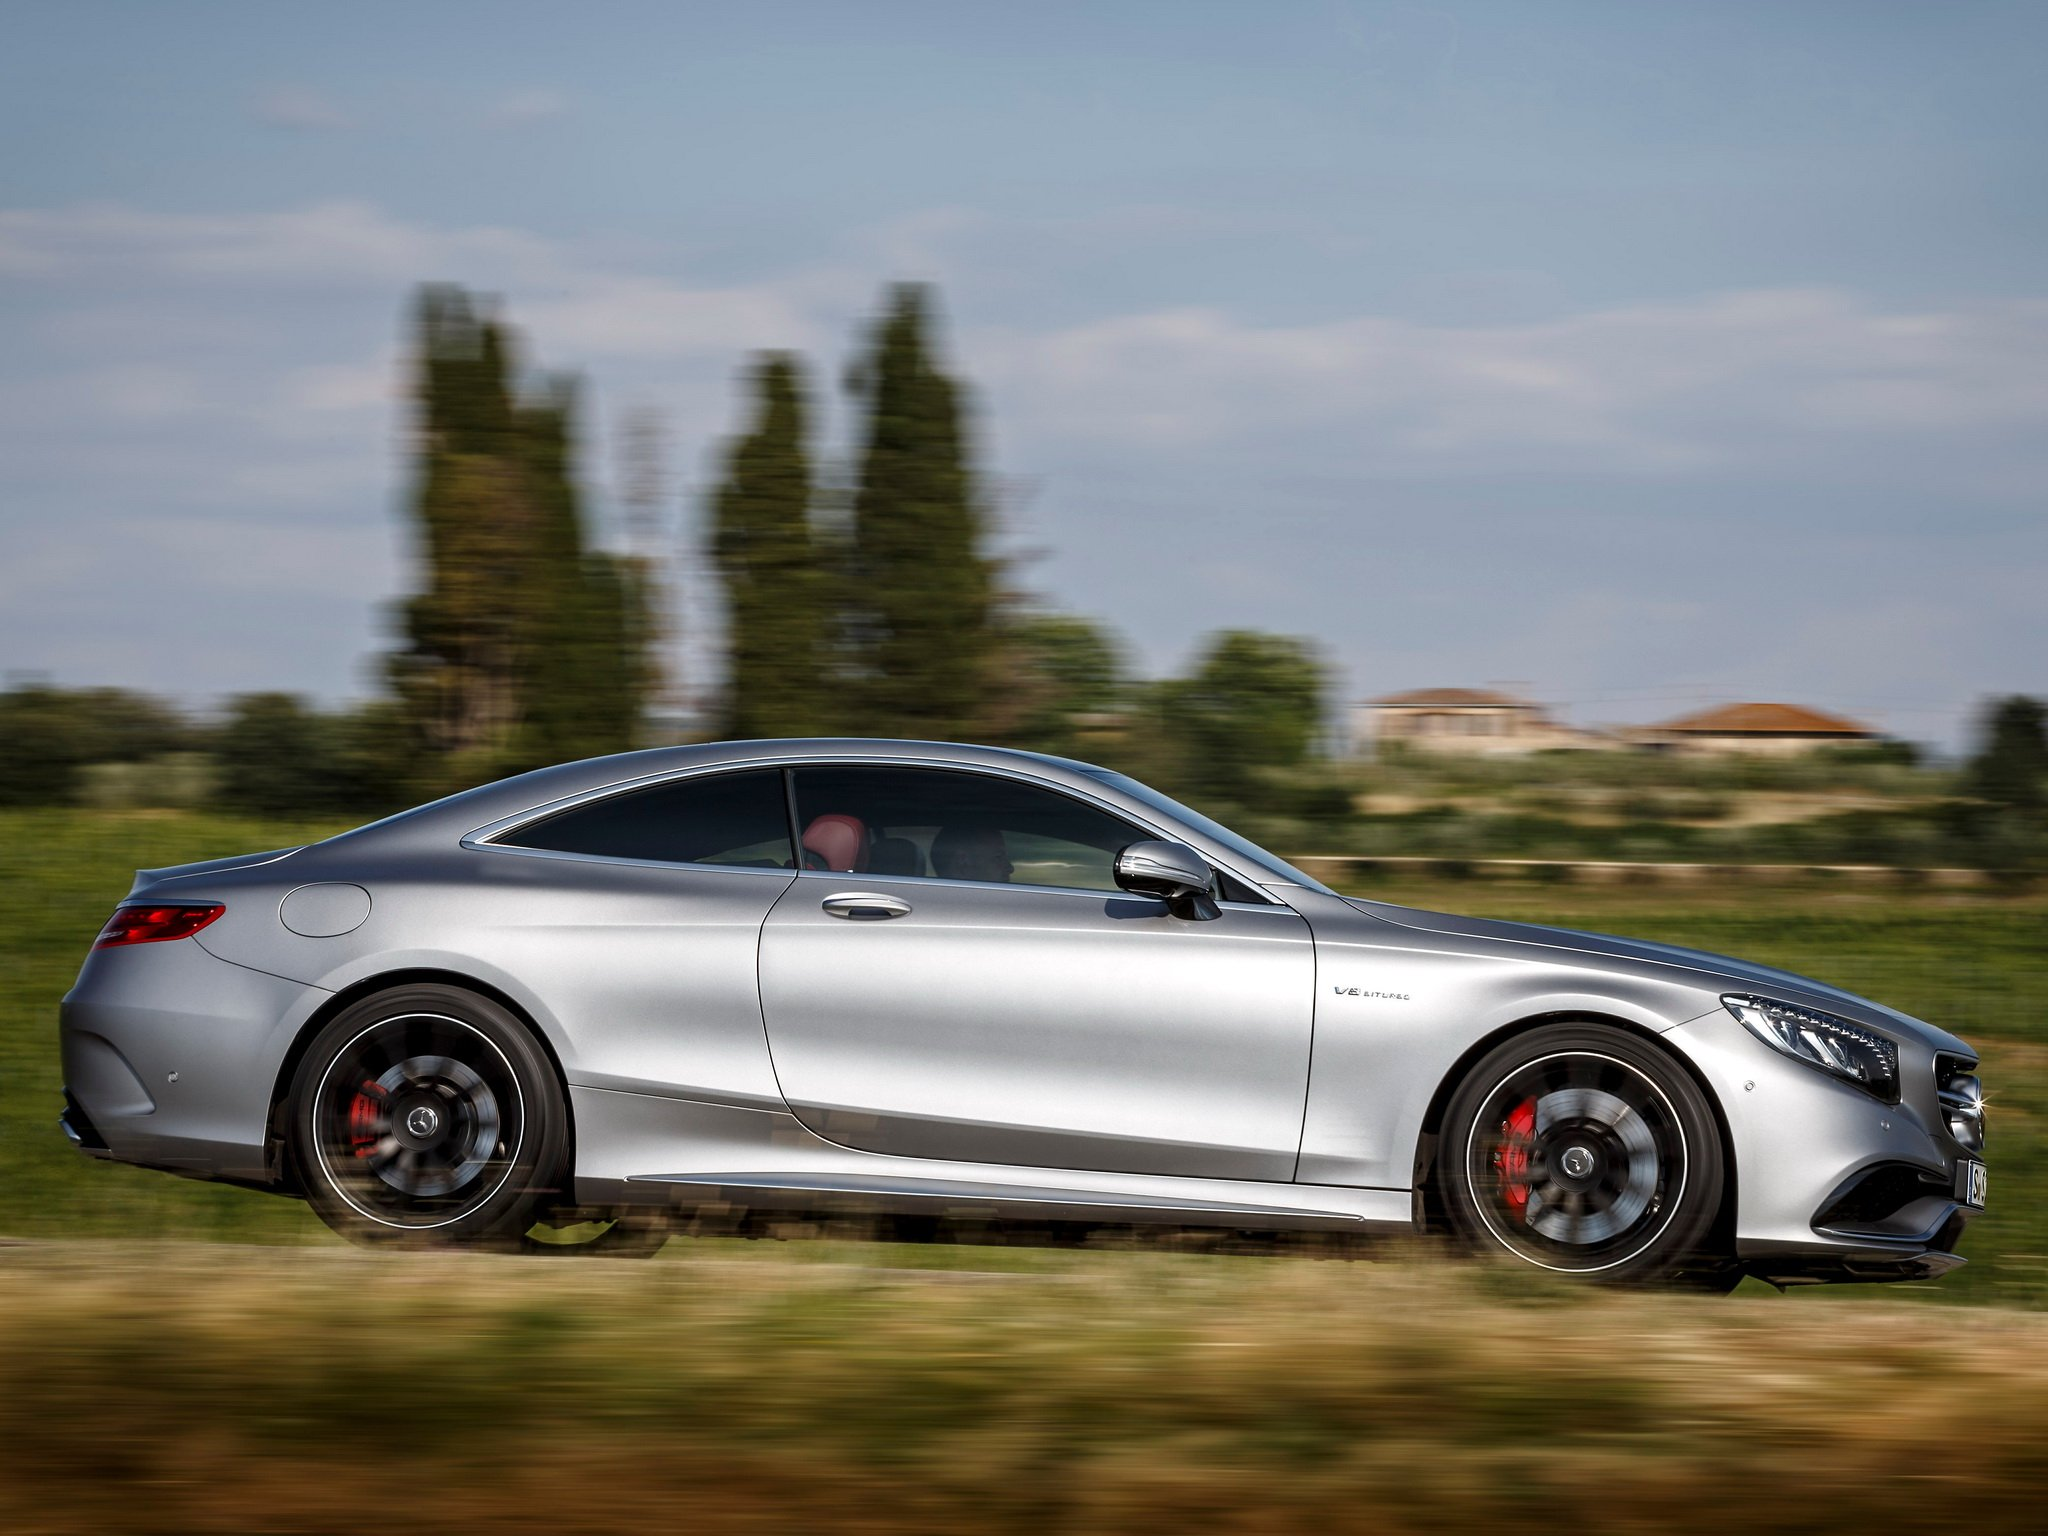 S 63 Amg Wallpaper: 2014 Mercedes Benz S63 AMG Coupe C217 Fs Wallpaper